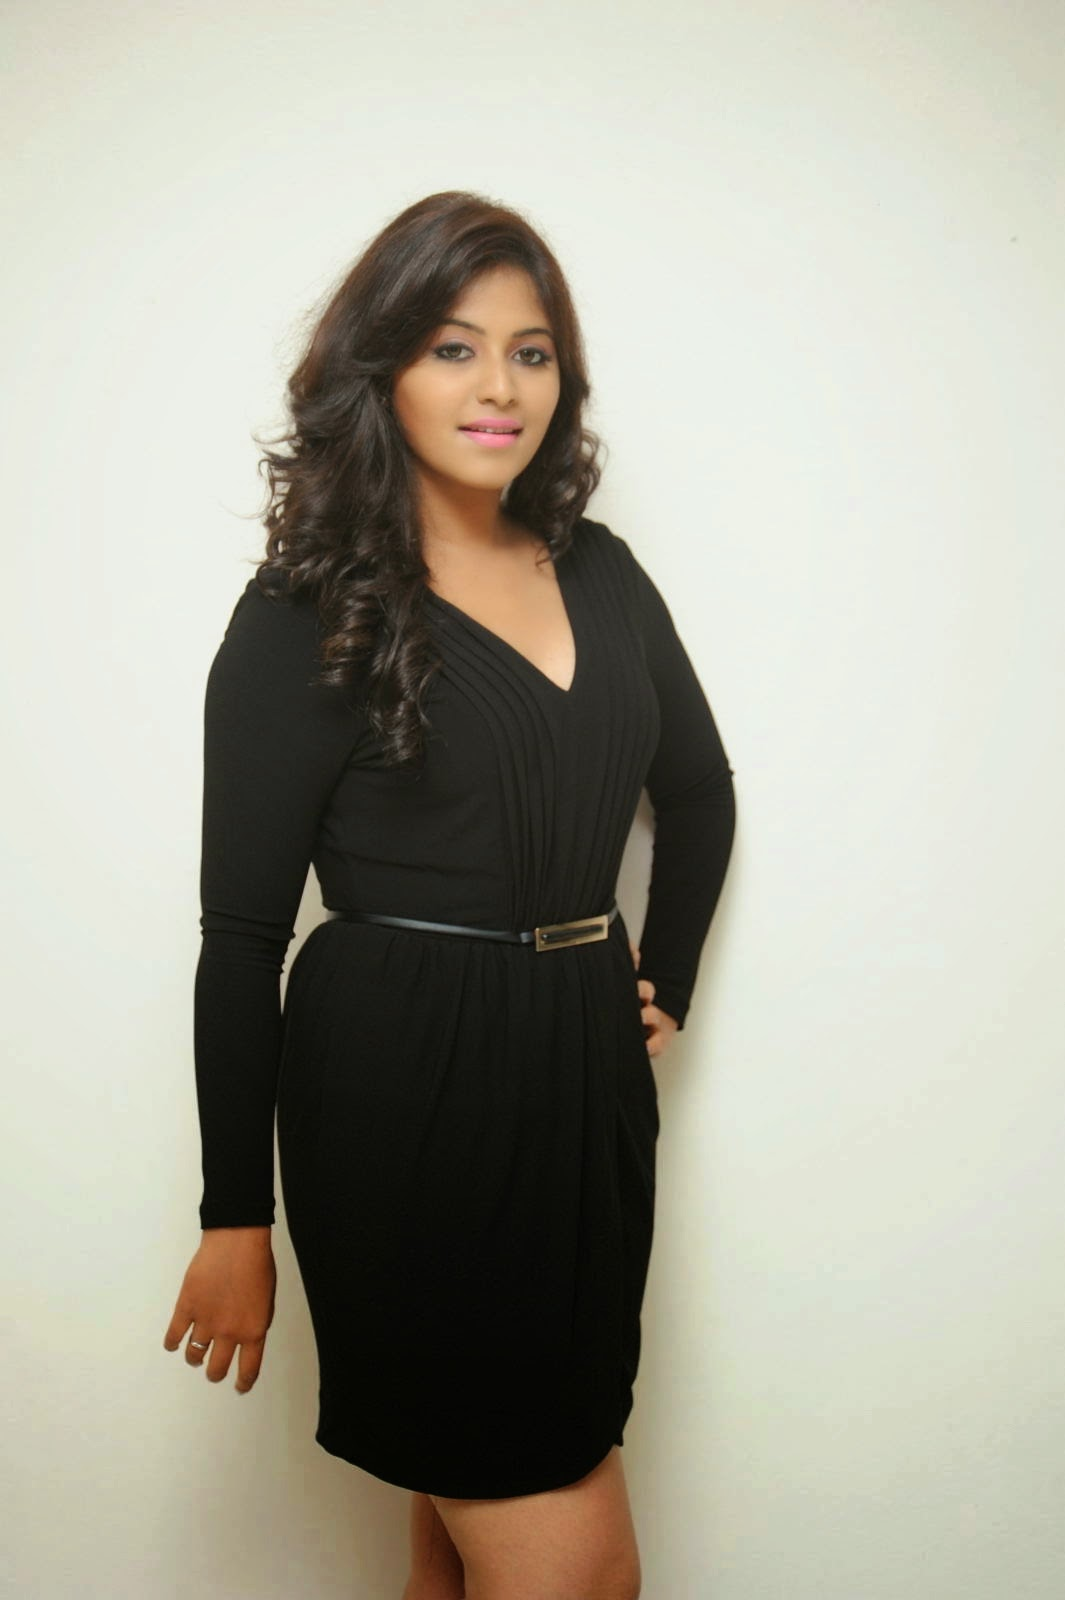 Anjali Hot Latest Images Hd - Images-1365